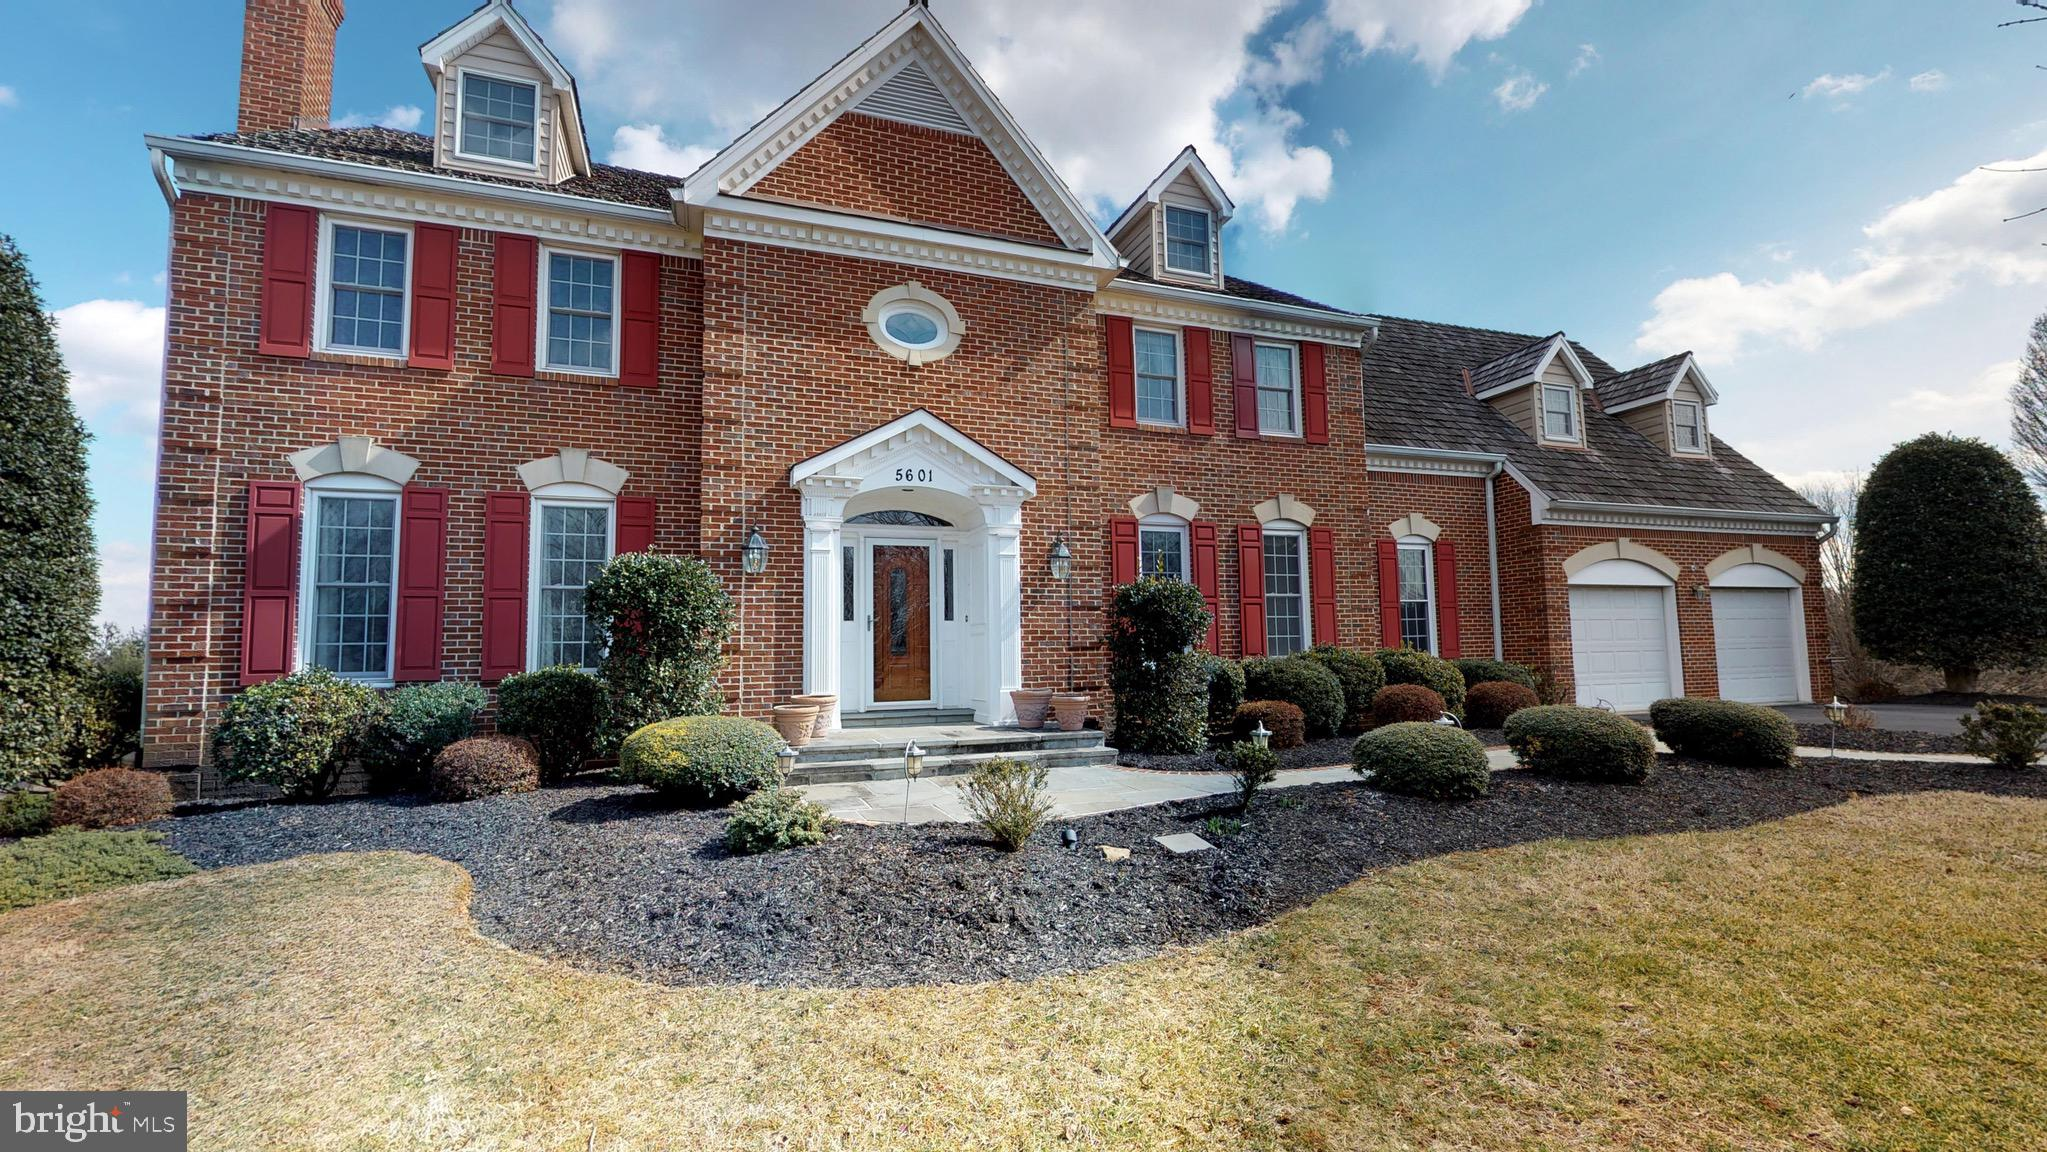 5601 SILO HILL COURT, ROCKVILLE, MD 20855